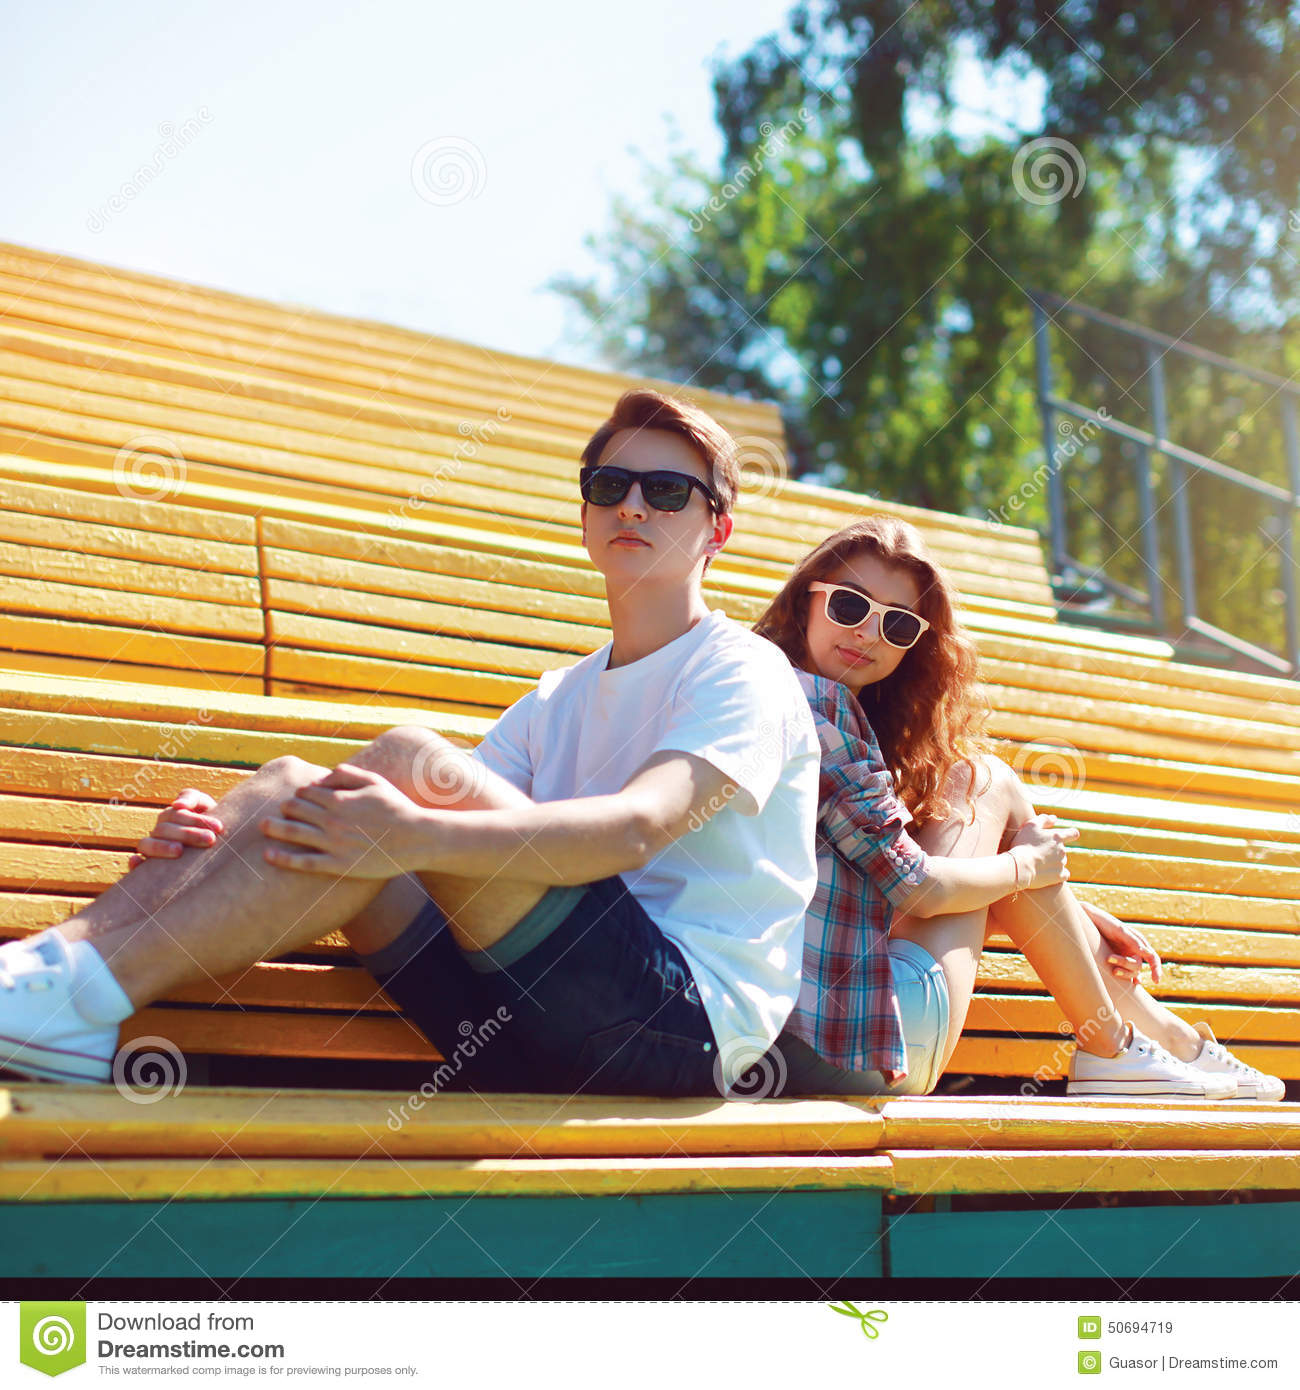 Fashion Hipster Couple In Sunglasses Sitting On The Bench